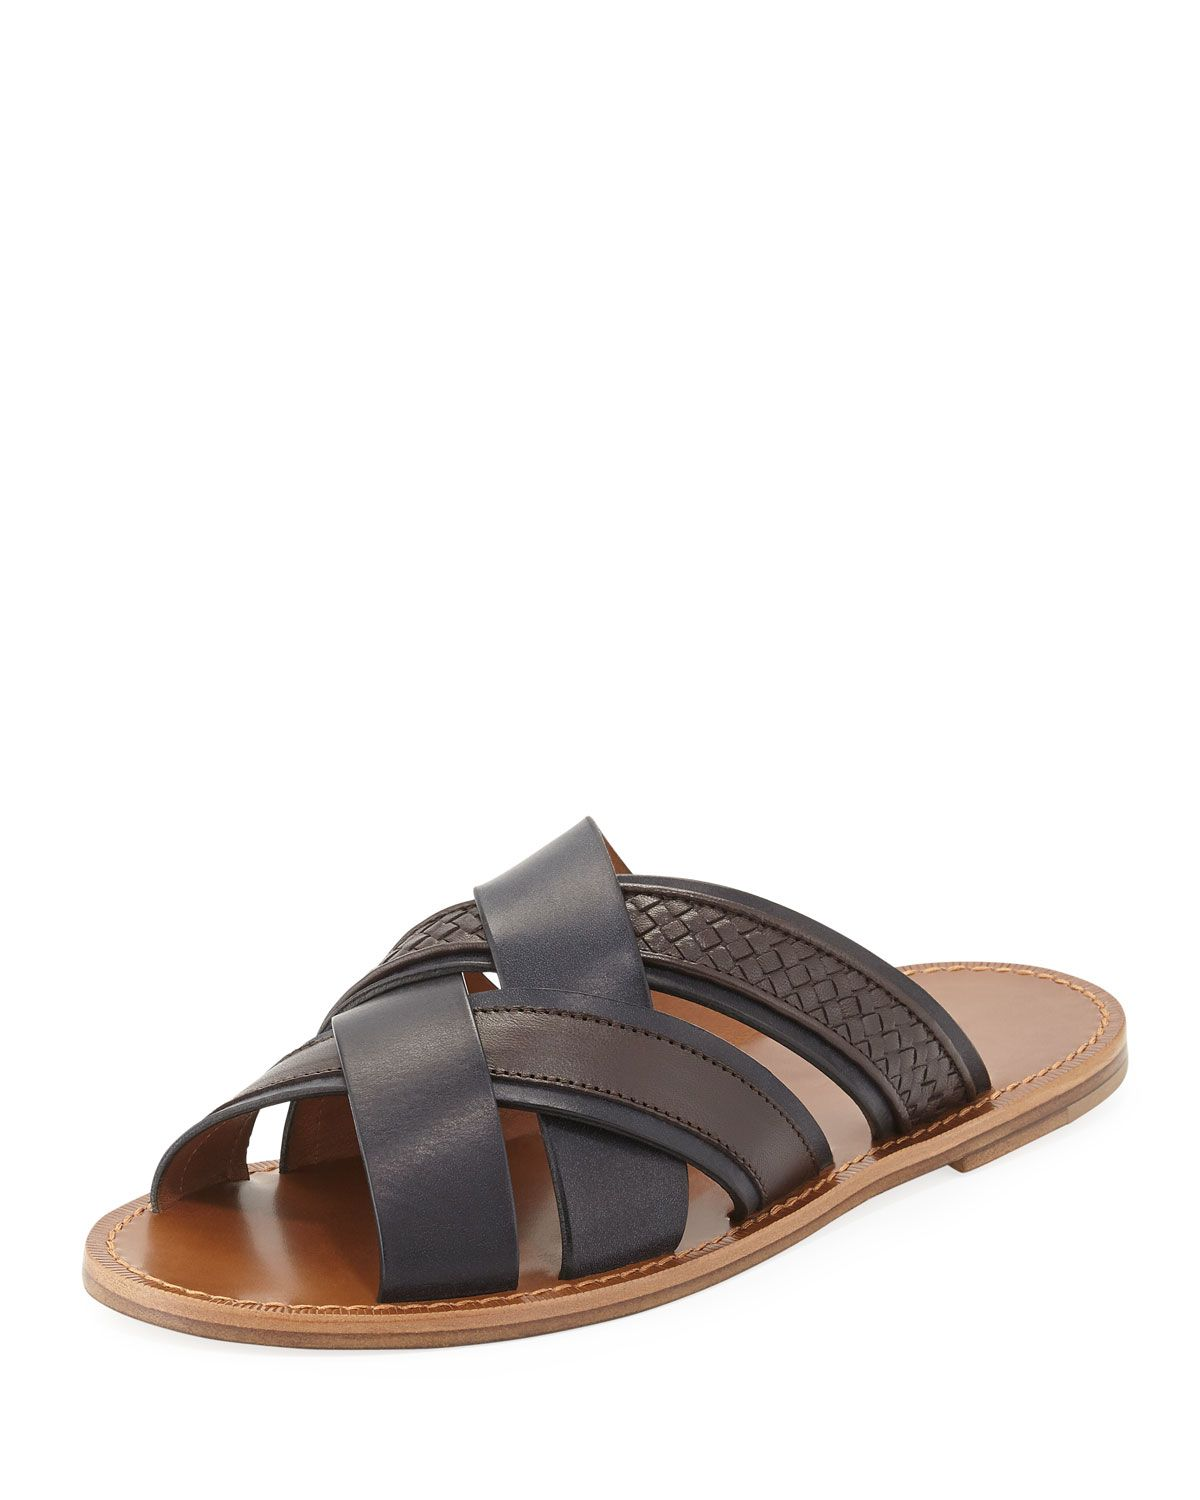 8a01241cd88f Men s Designer Sandals   Flip Flops at Neiman Marcus. Woven Leather  Crisscross Sandal